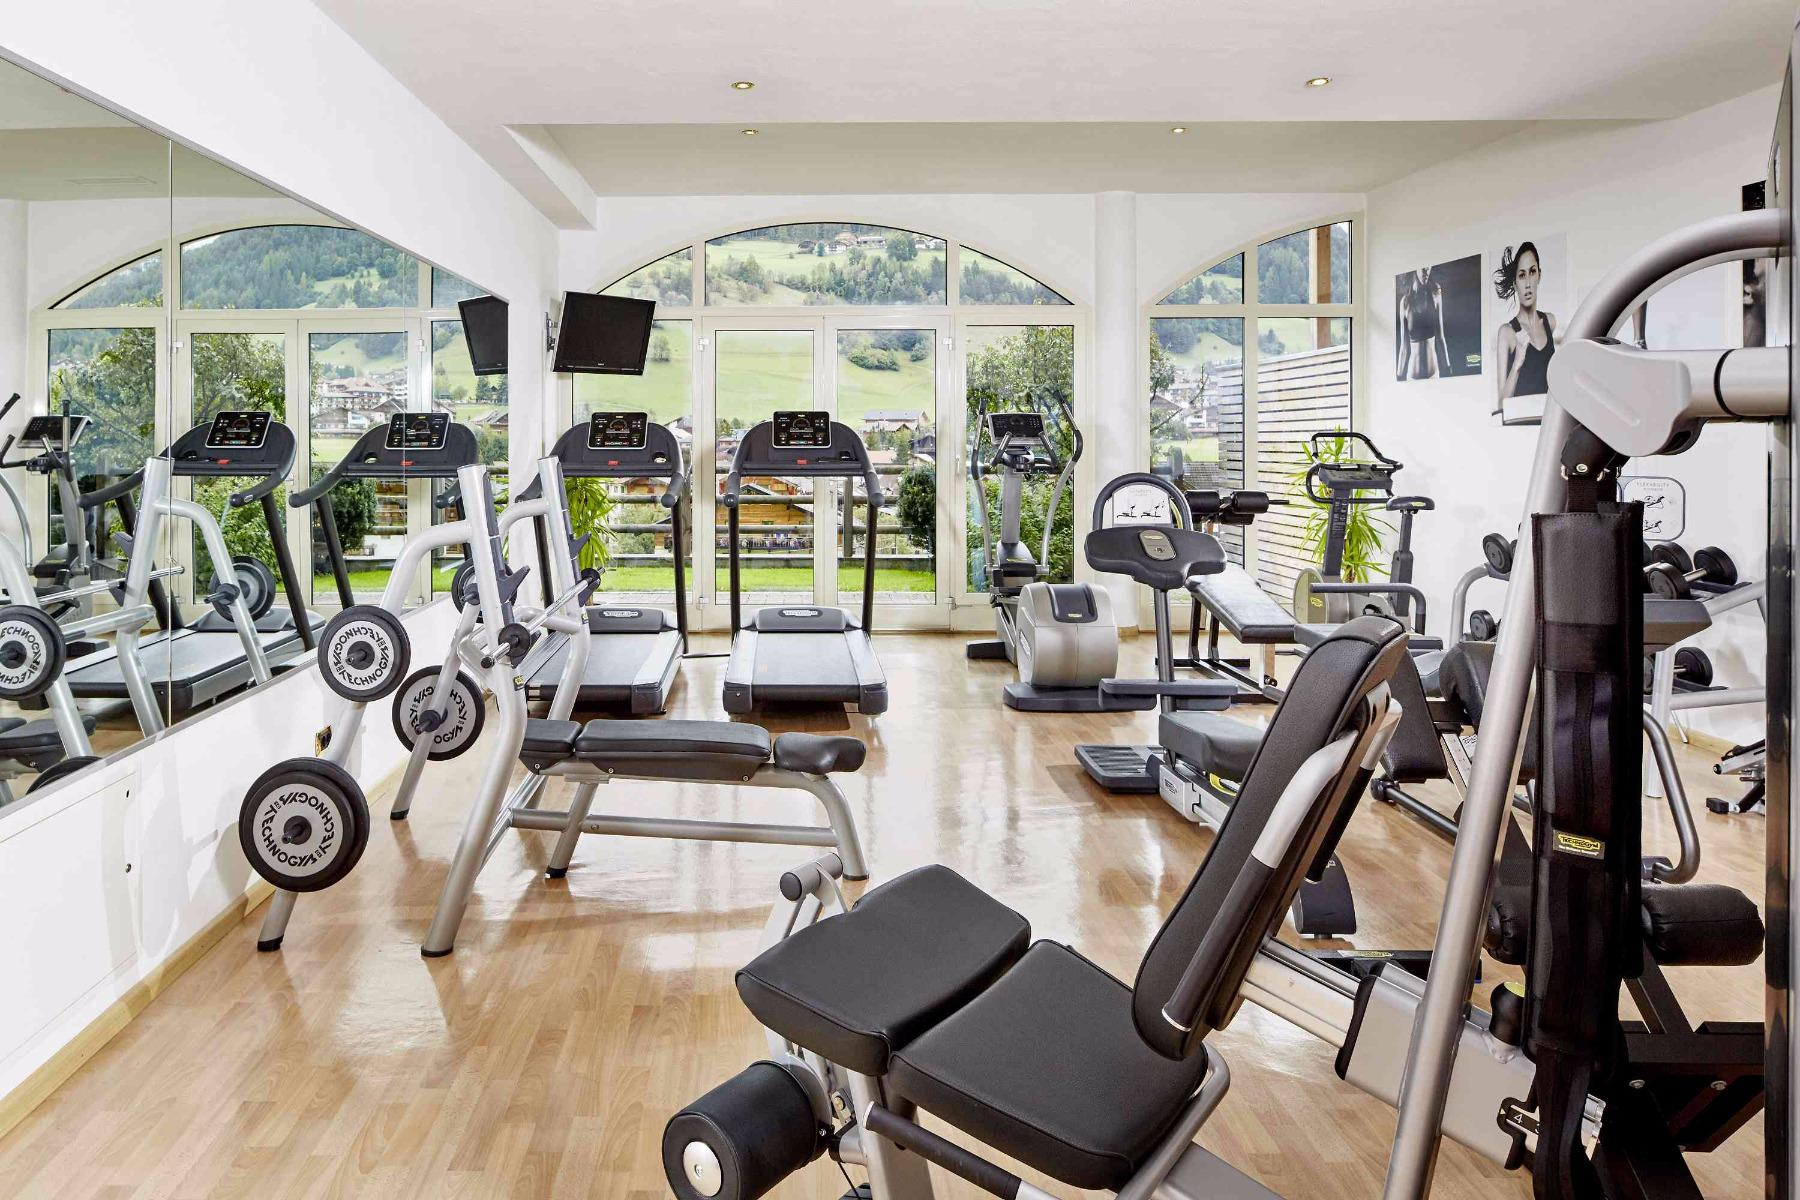 Assisted Training in the Fitness-Center with Markus week programm